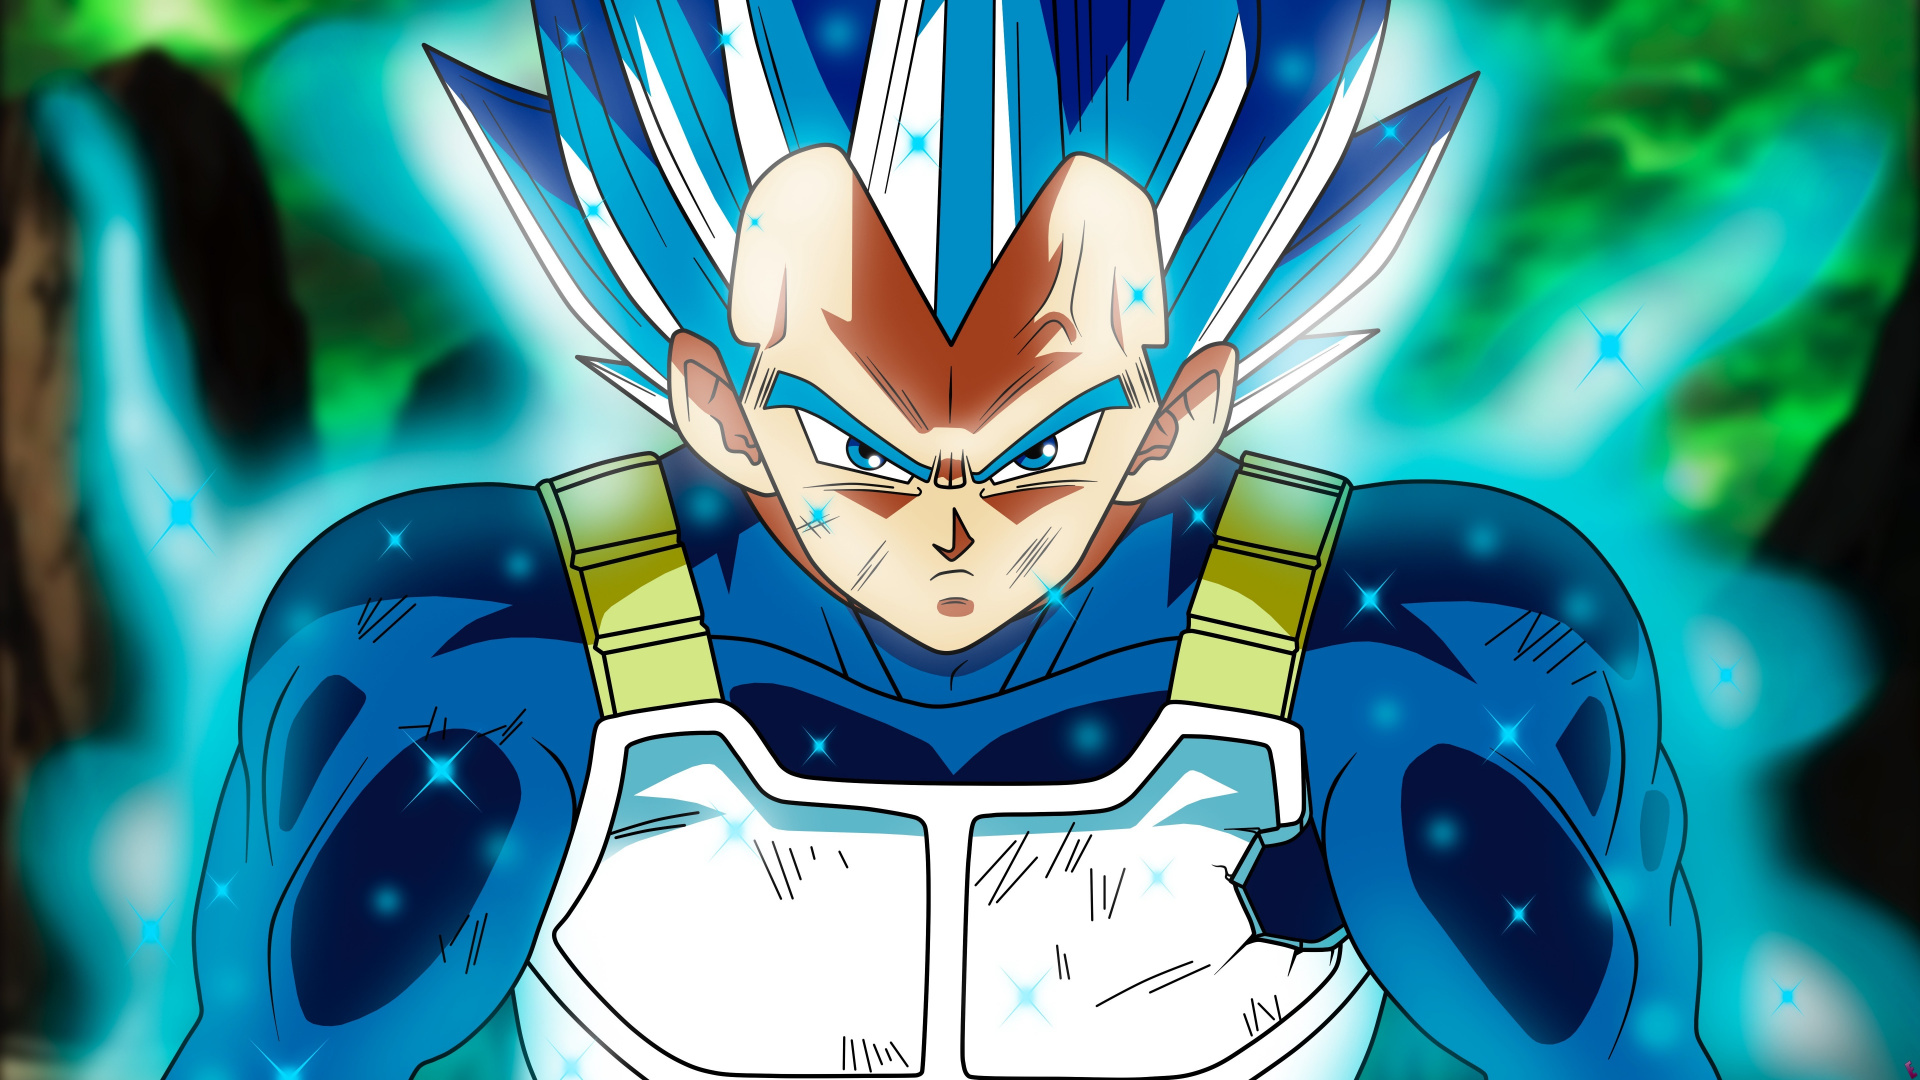 Vegeta Hd Wallpapers 1080p Posted By Samantha Peltier